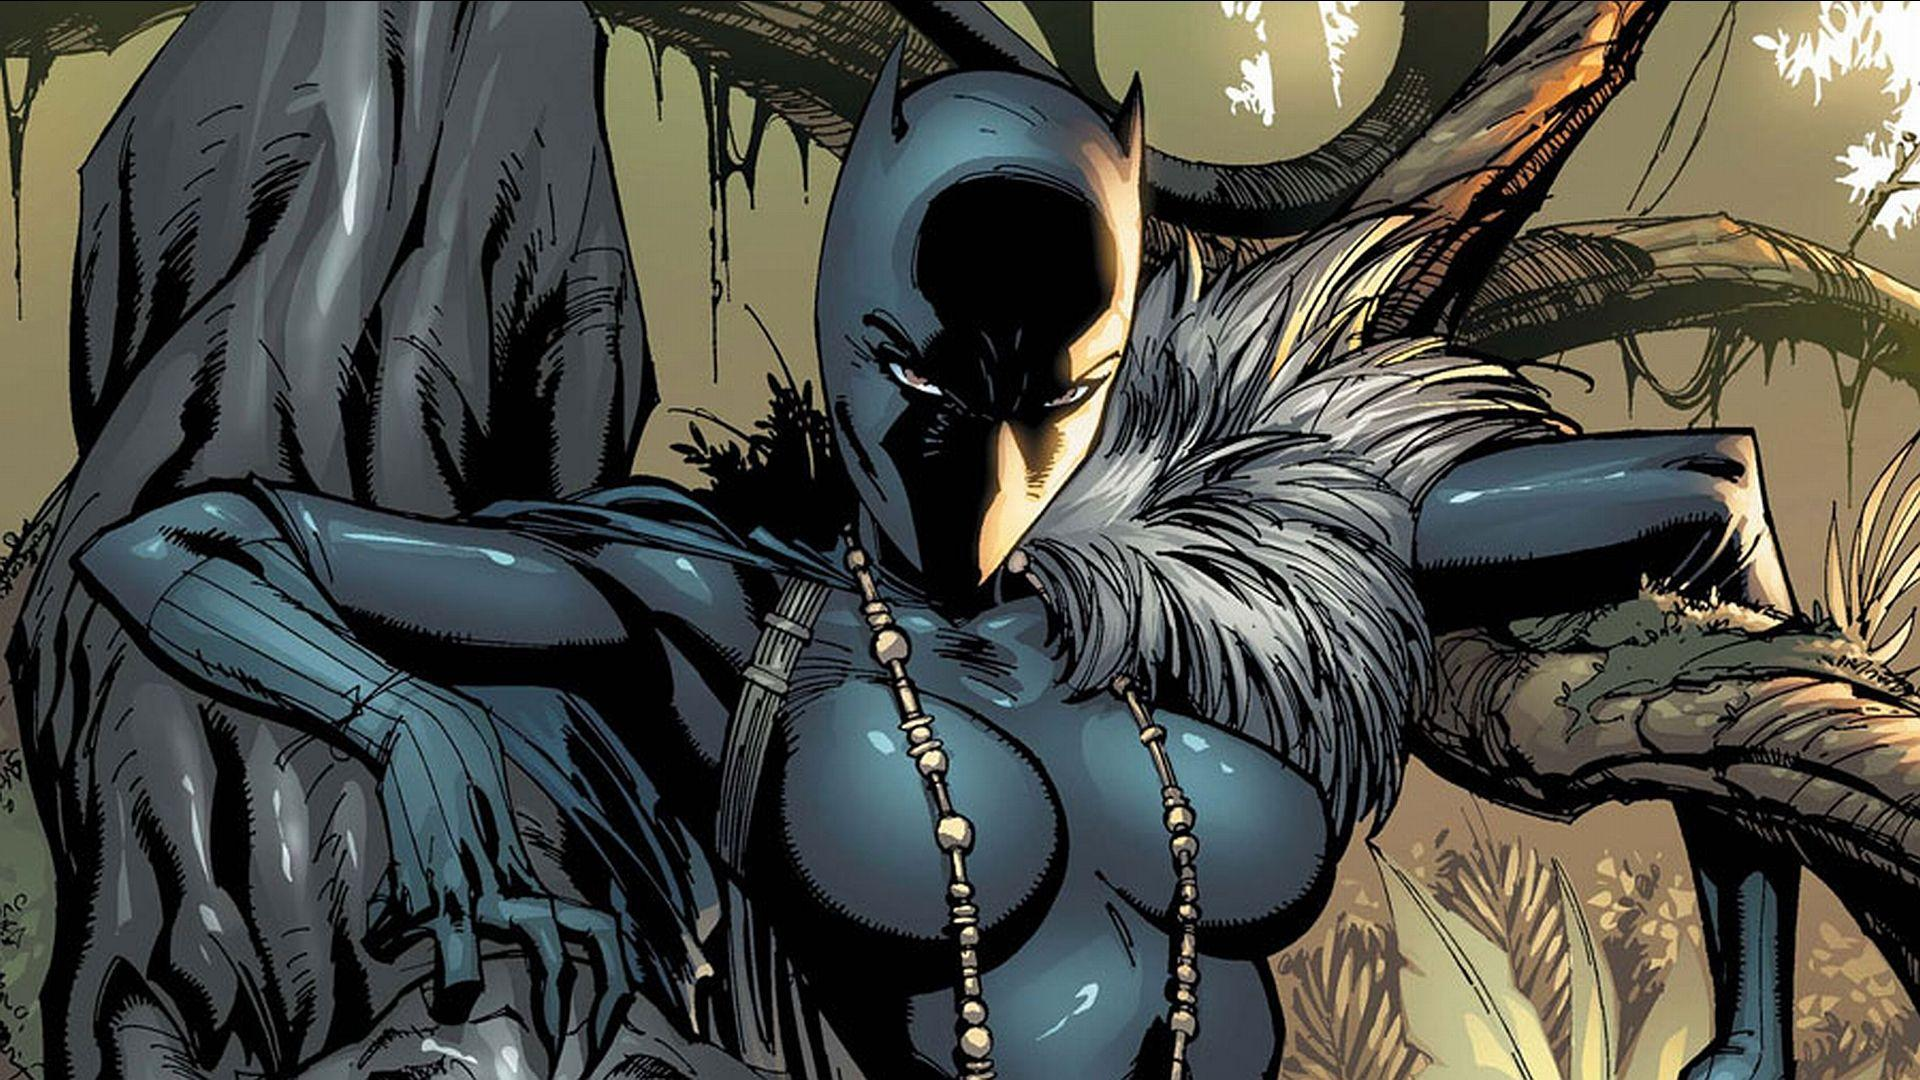 79 Black Panther (Marvel) HD Wallpapers | Backgrounds - Wallpaper ...